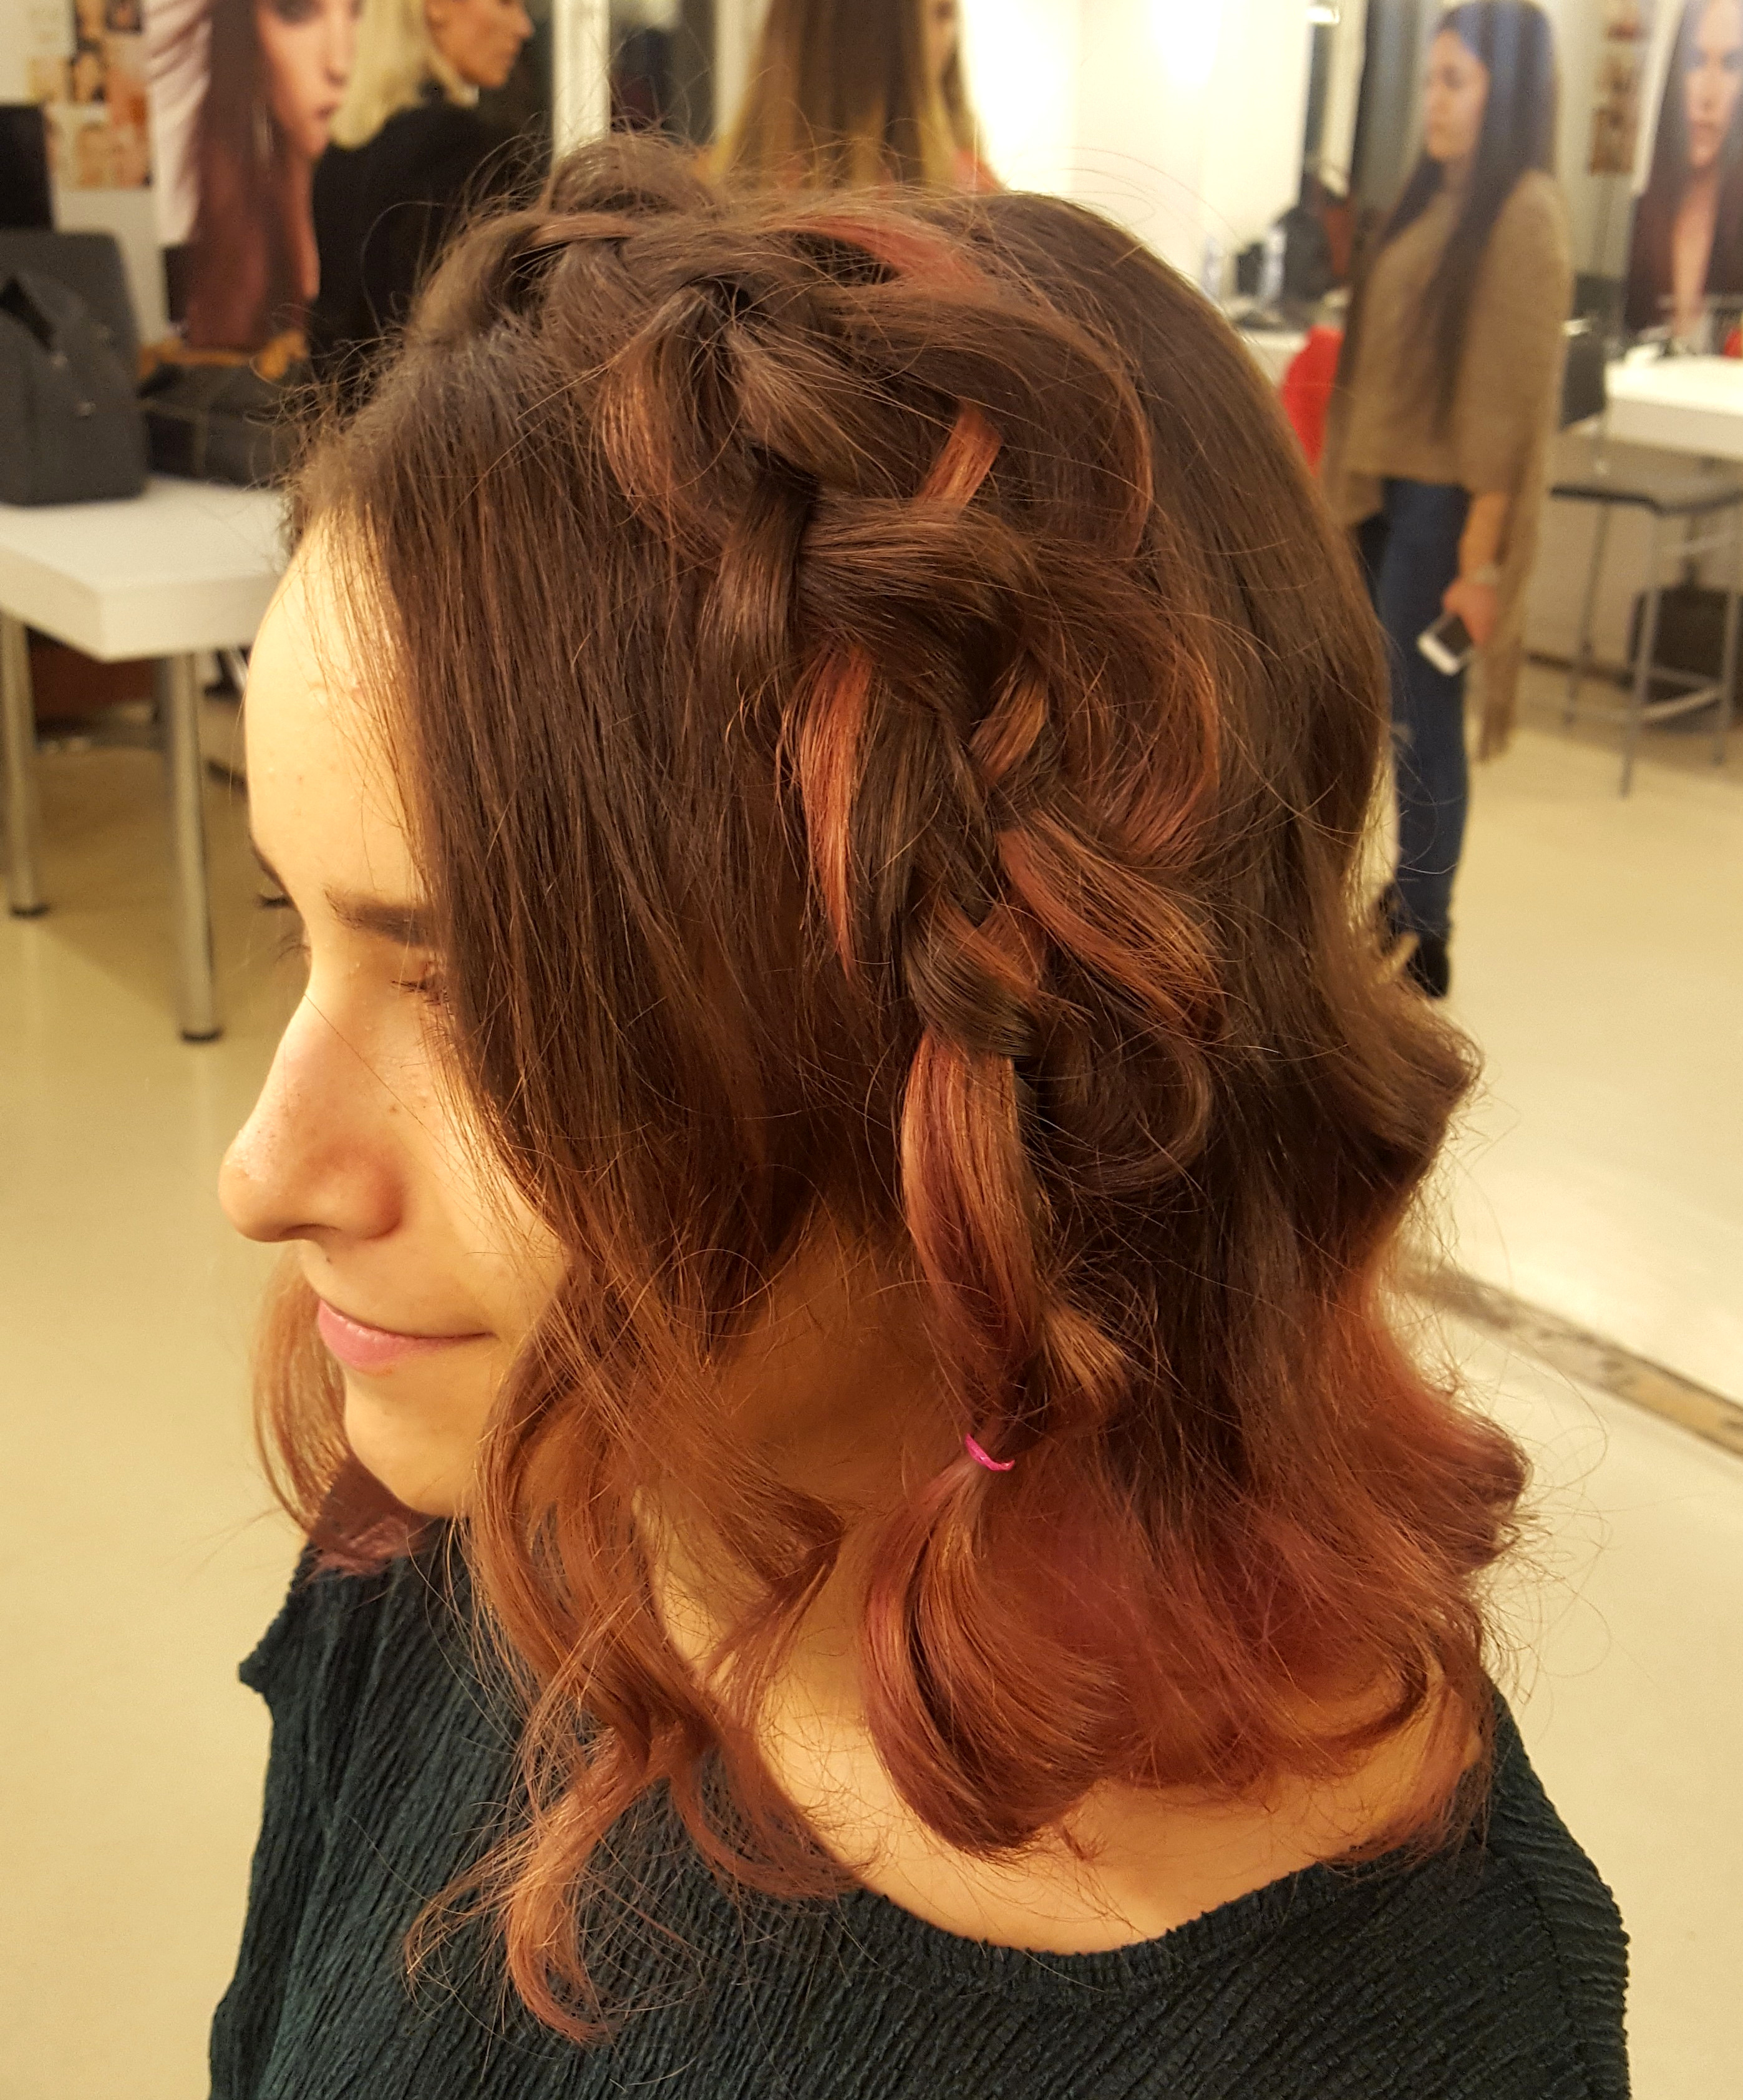 curs hairstyling 8